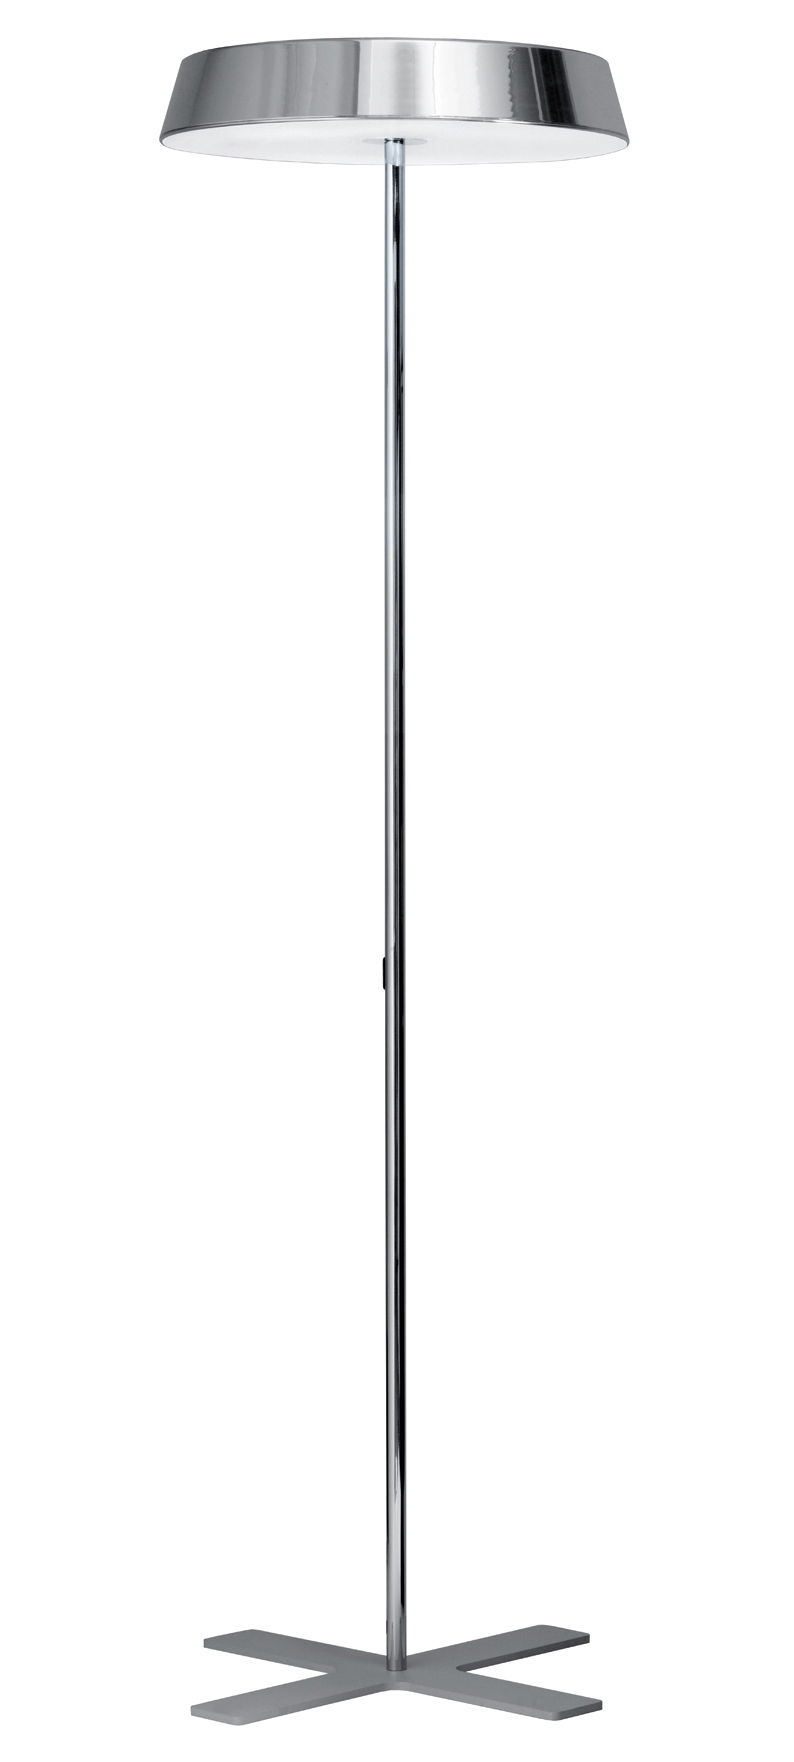 Lighting - Floor lamps - Koi Floor lamp - Switch by Belux - Chrome - With switcher - Chromed steel